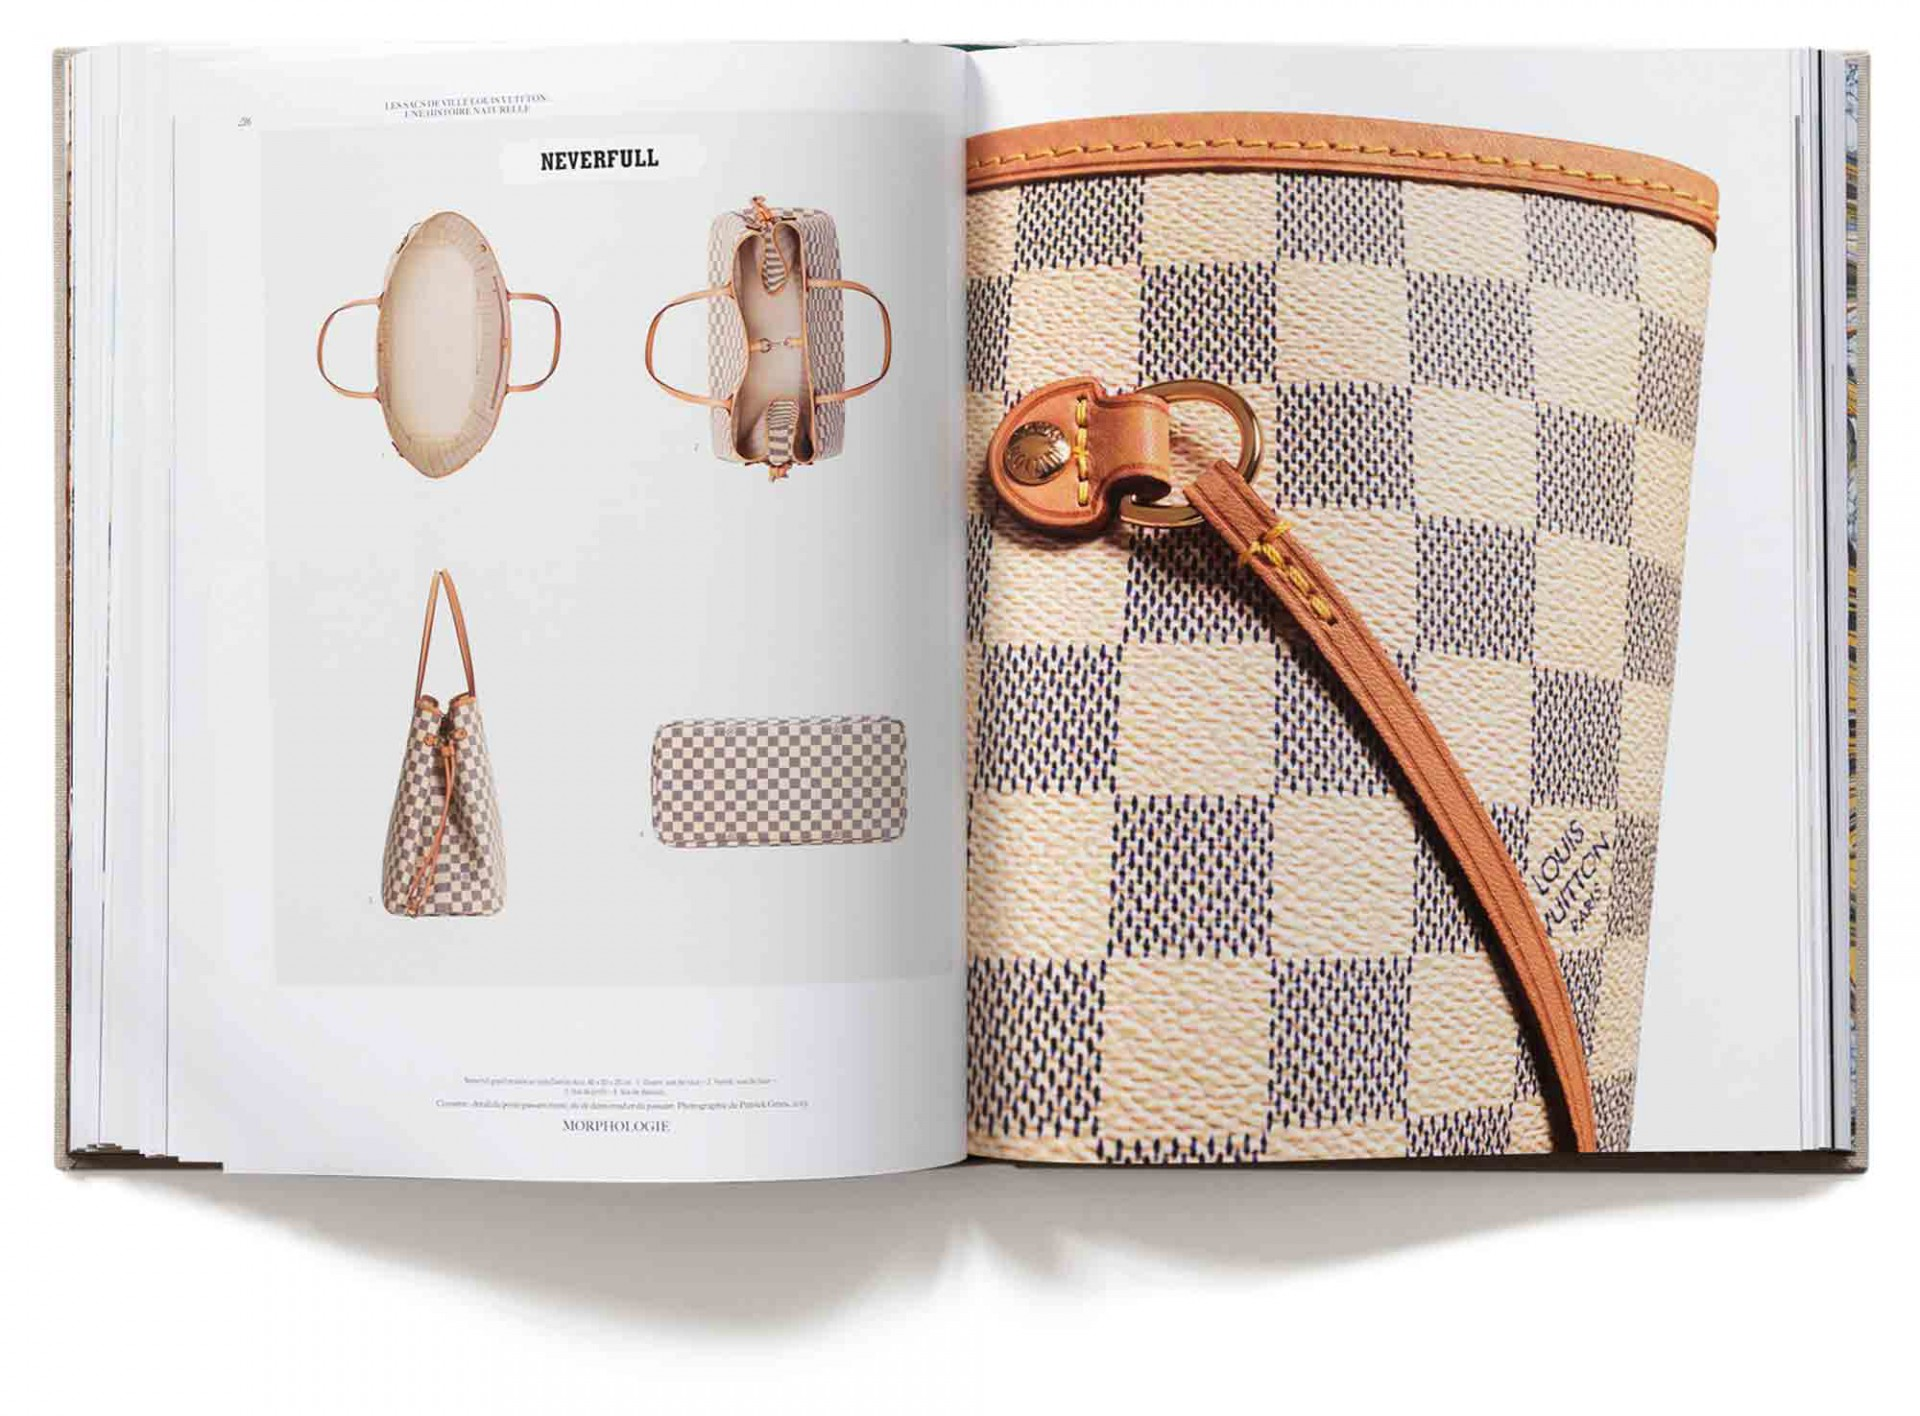 Patrick Gries Louis Vuitton<br/>Les sacs de ville &#8211; City bags